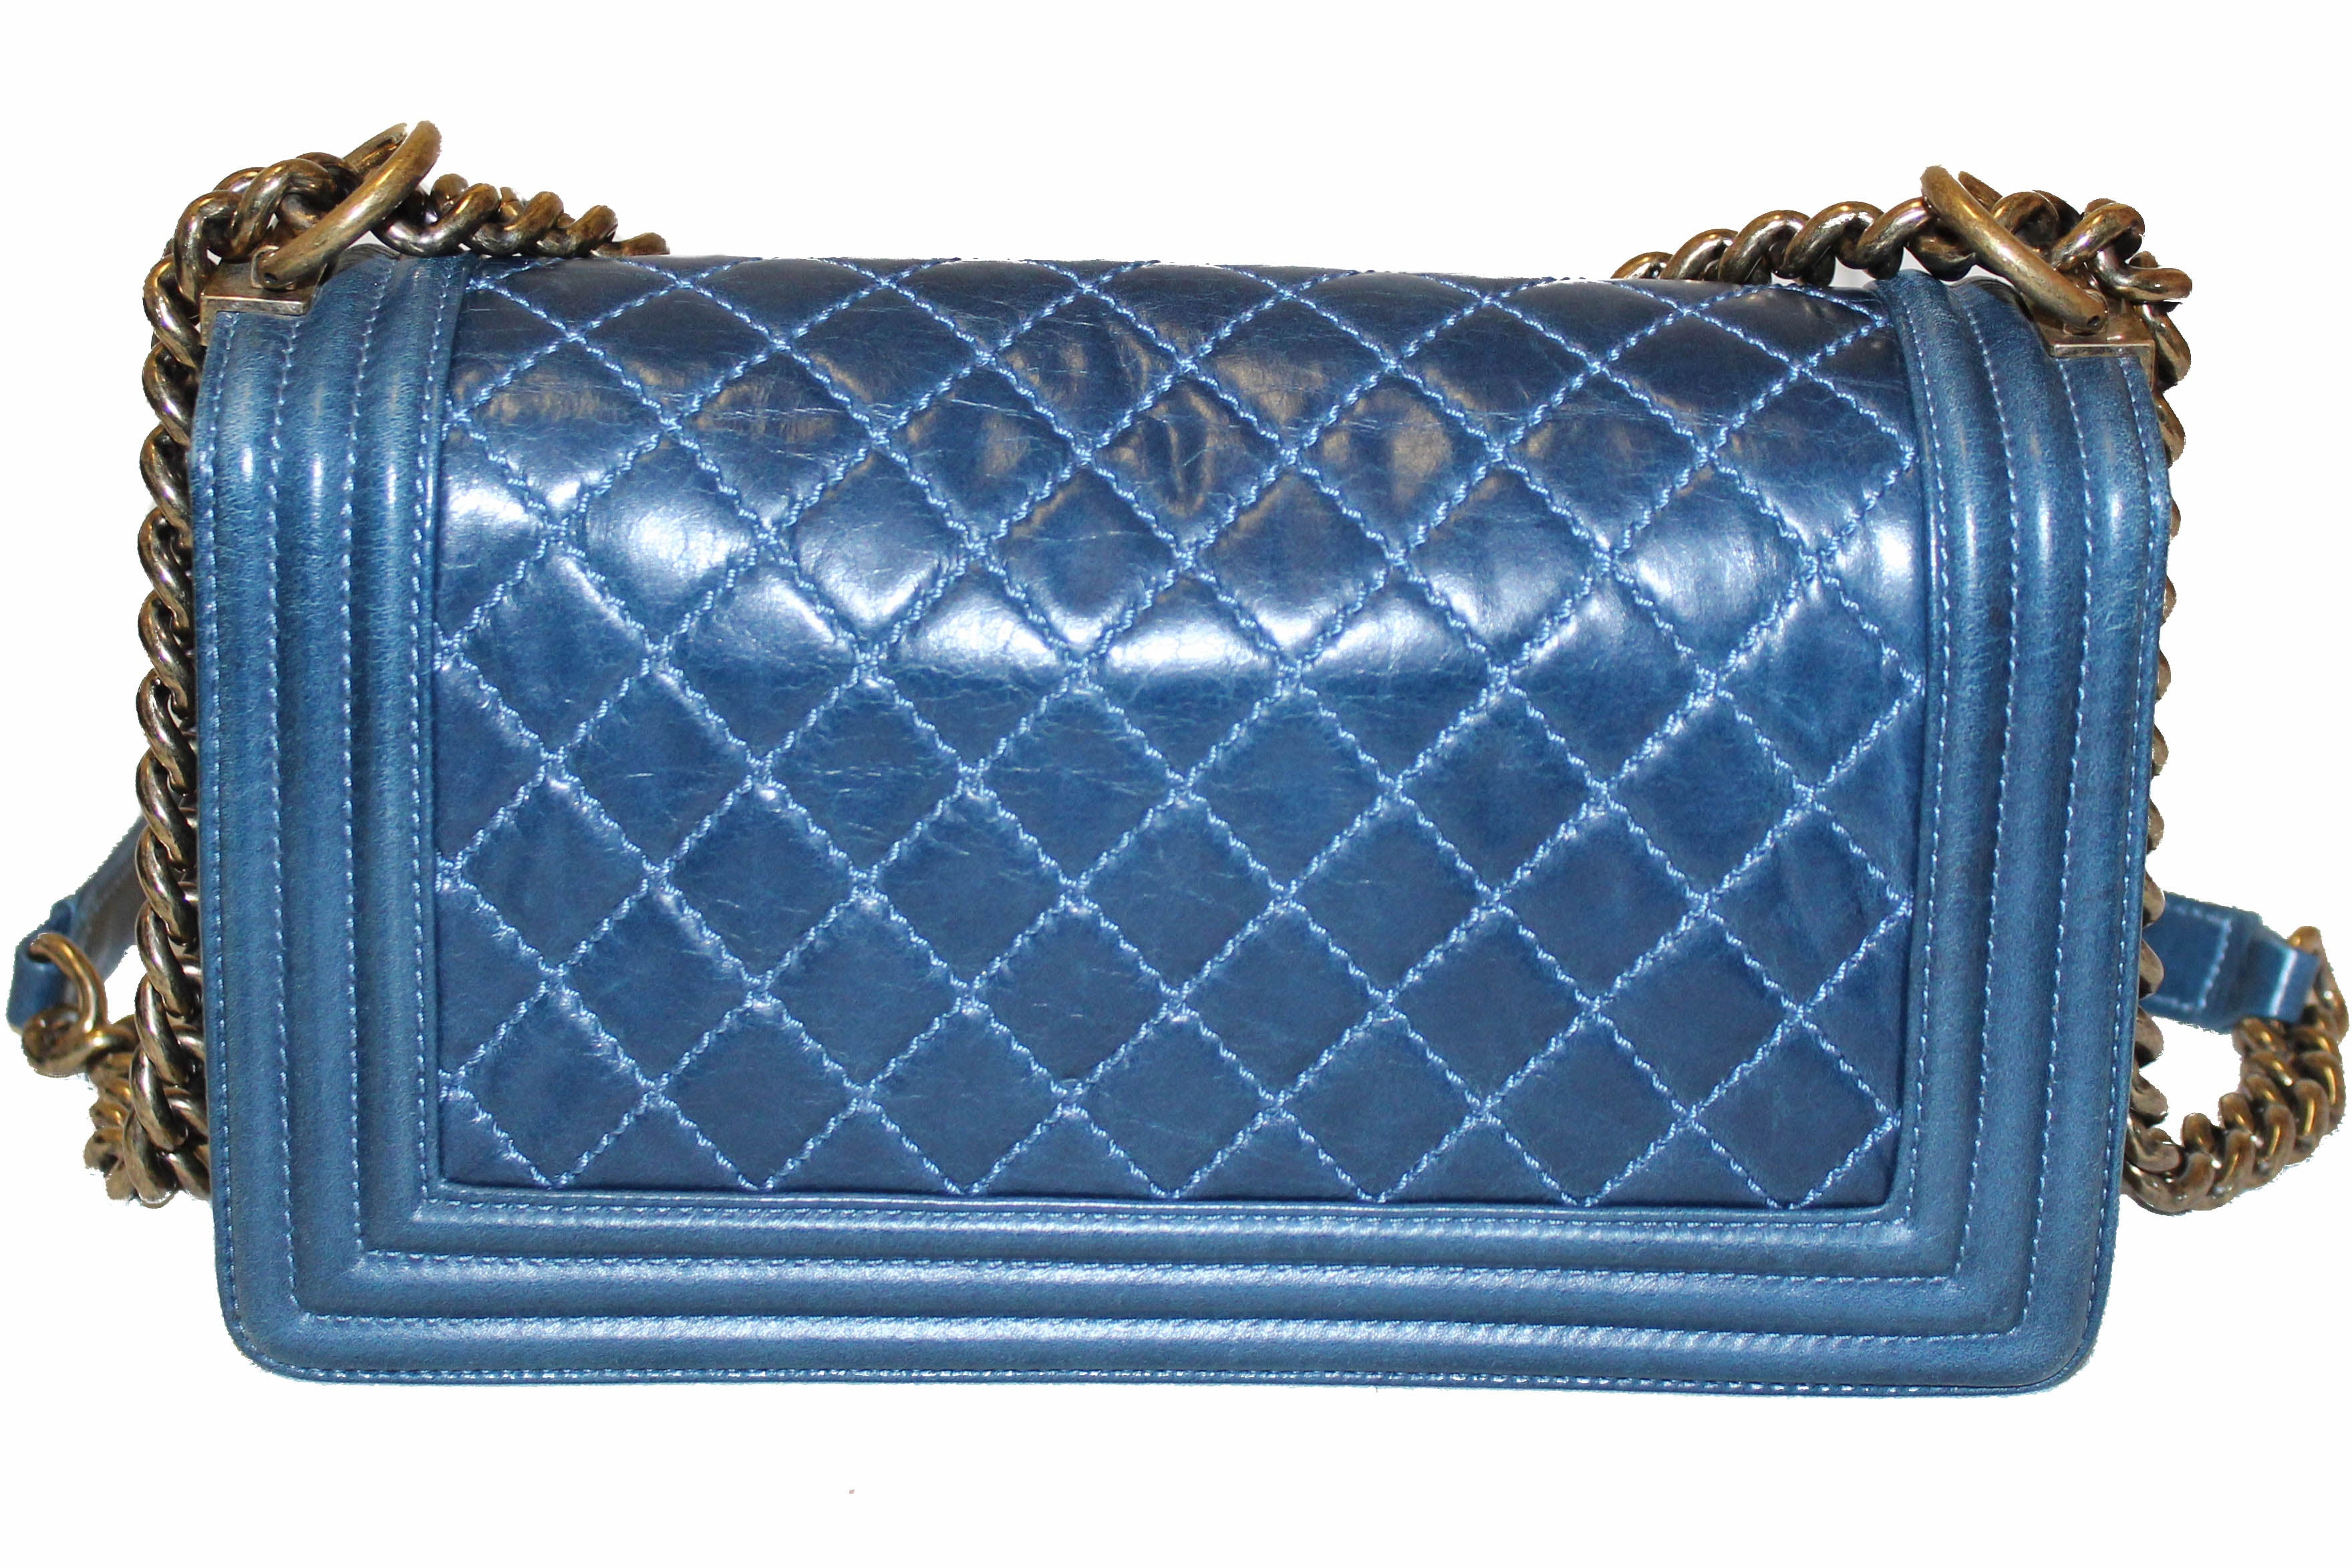 Authentic Chanel Blue Quilted Aged Calfskin Old Medium Boy Shoulder Bag